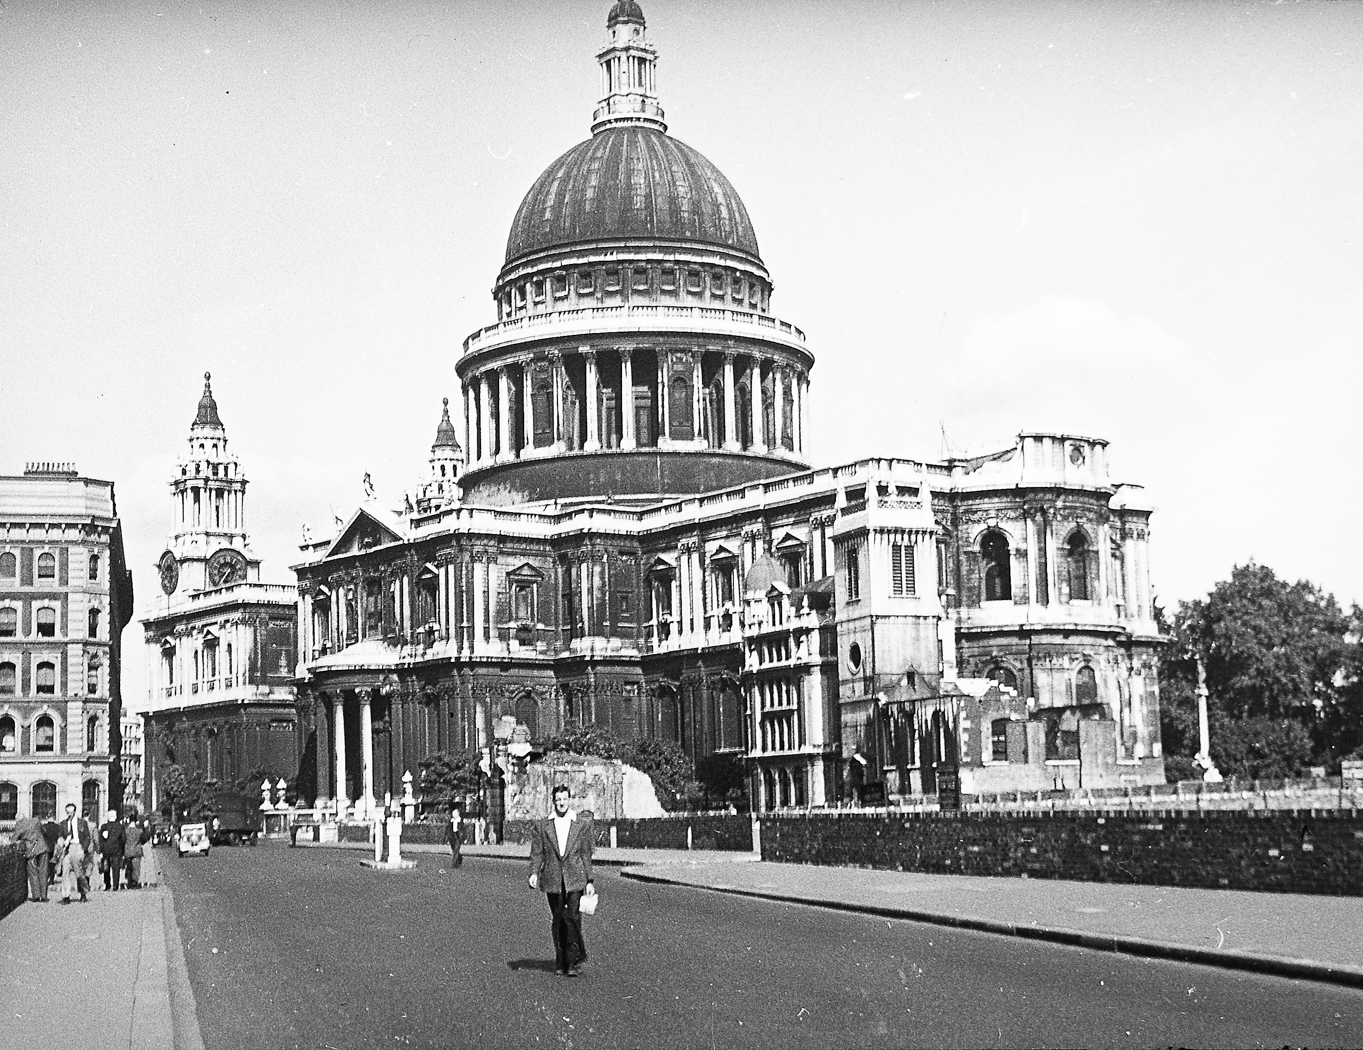 039_27 St. Pauls Cathedral London